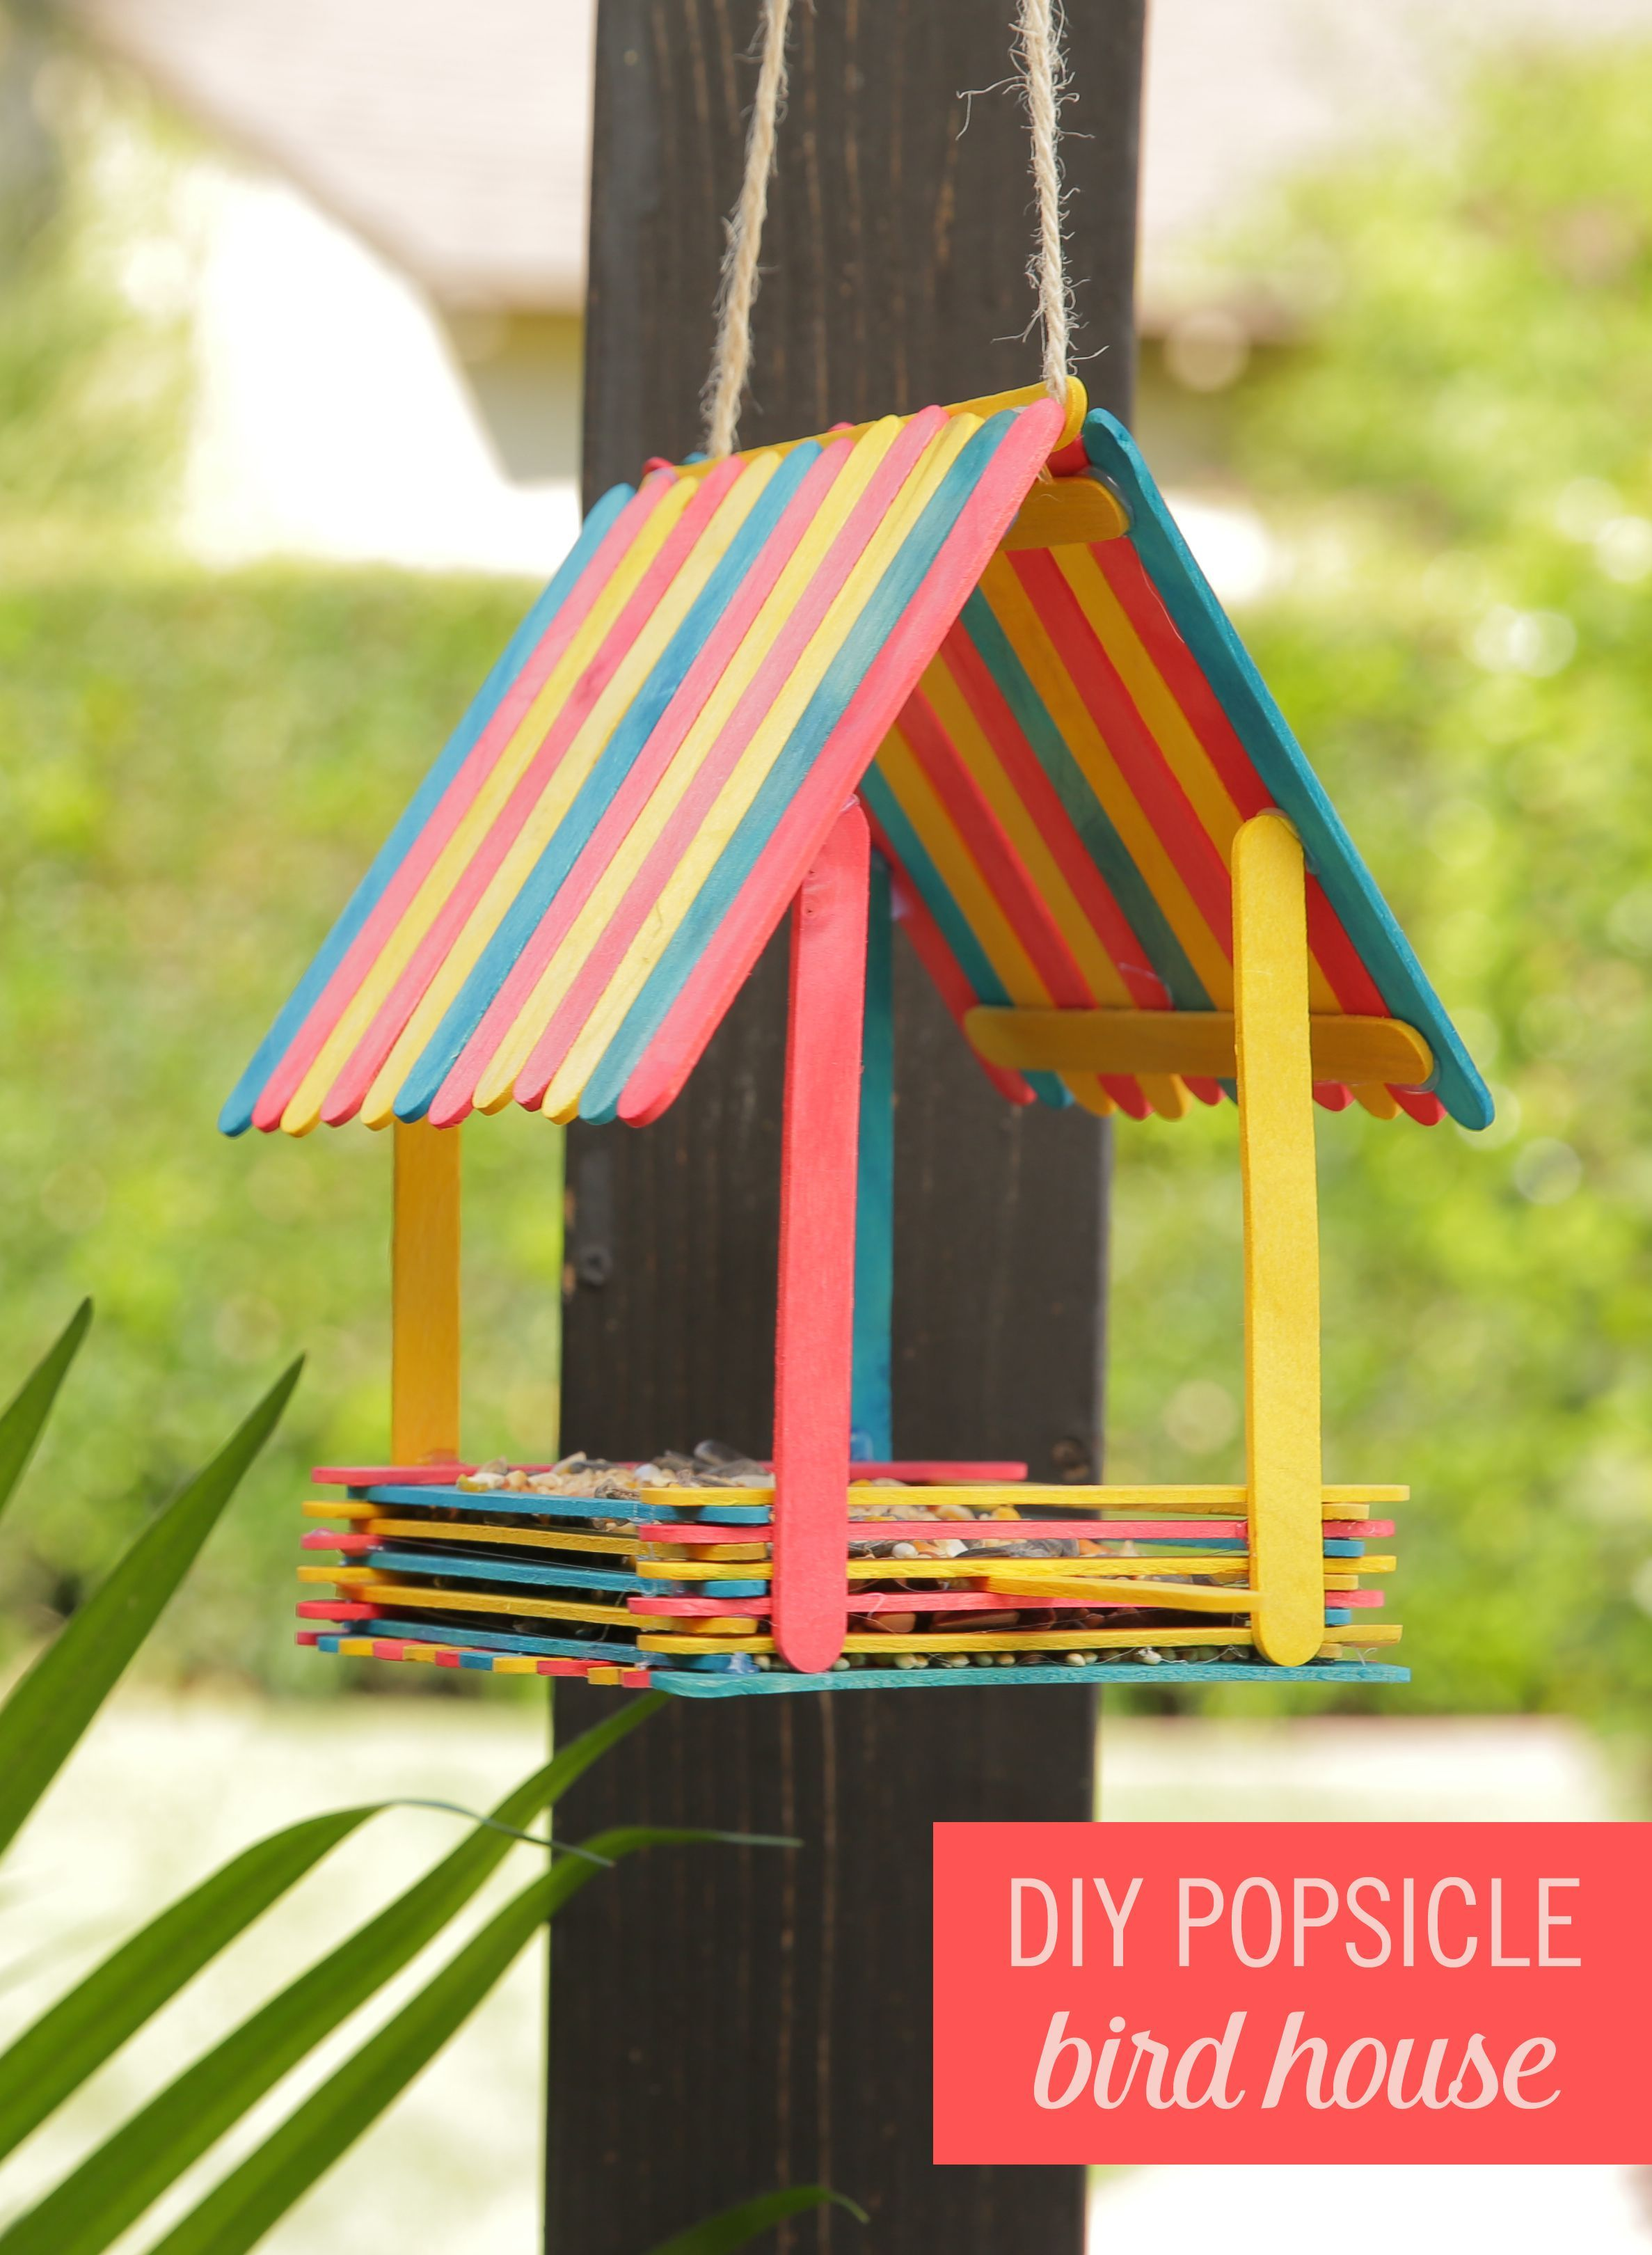 Photo of Turn Popsicles into an Adorable Bird House,  #Adorable #Bird #House #Popsicles #Turn